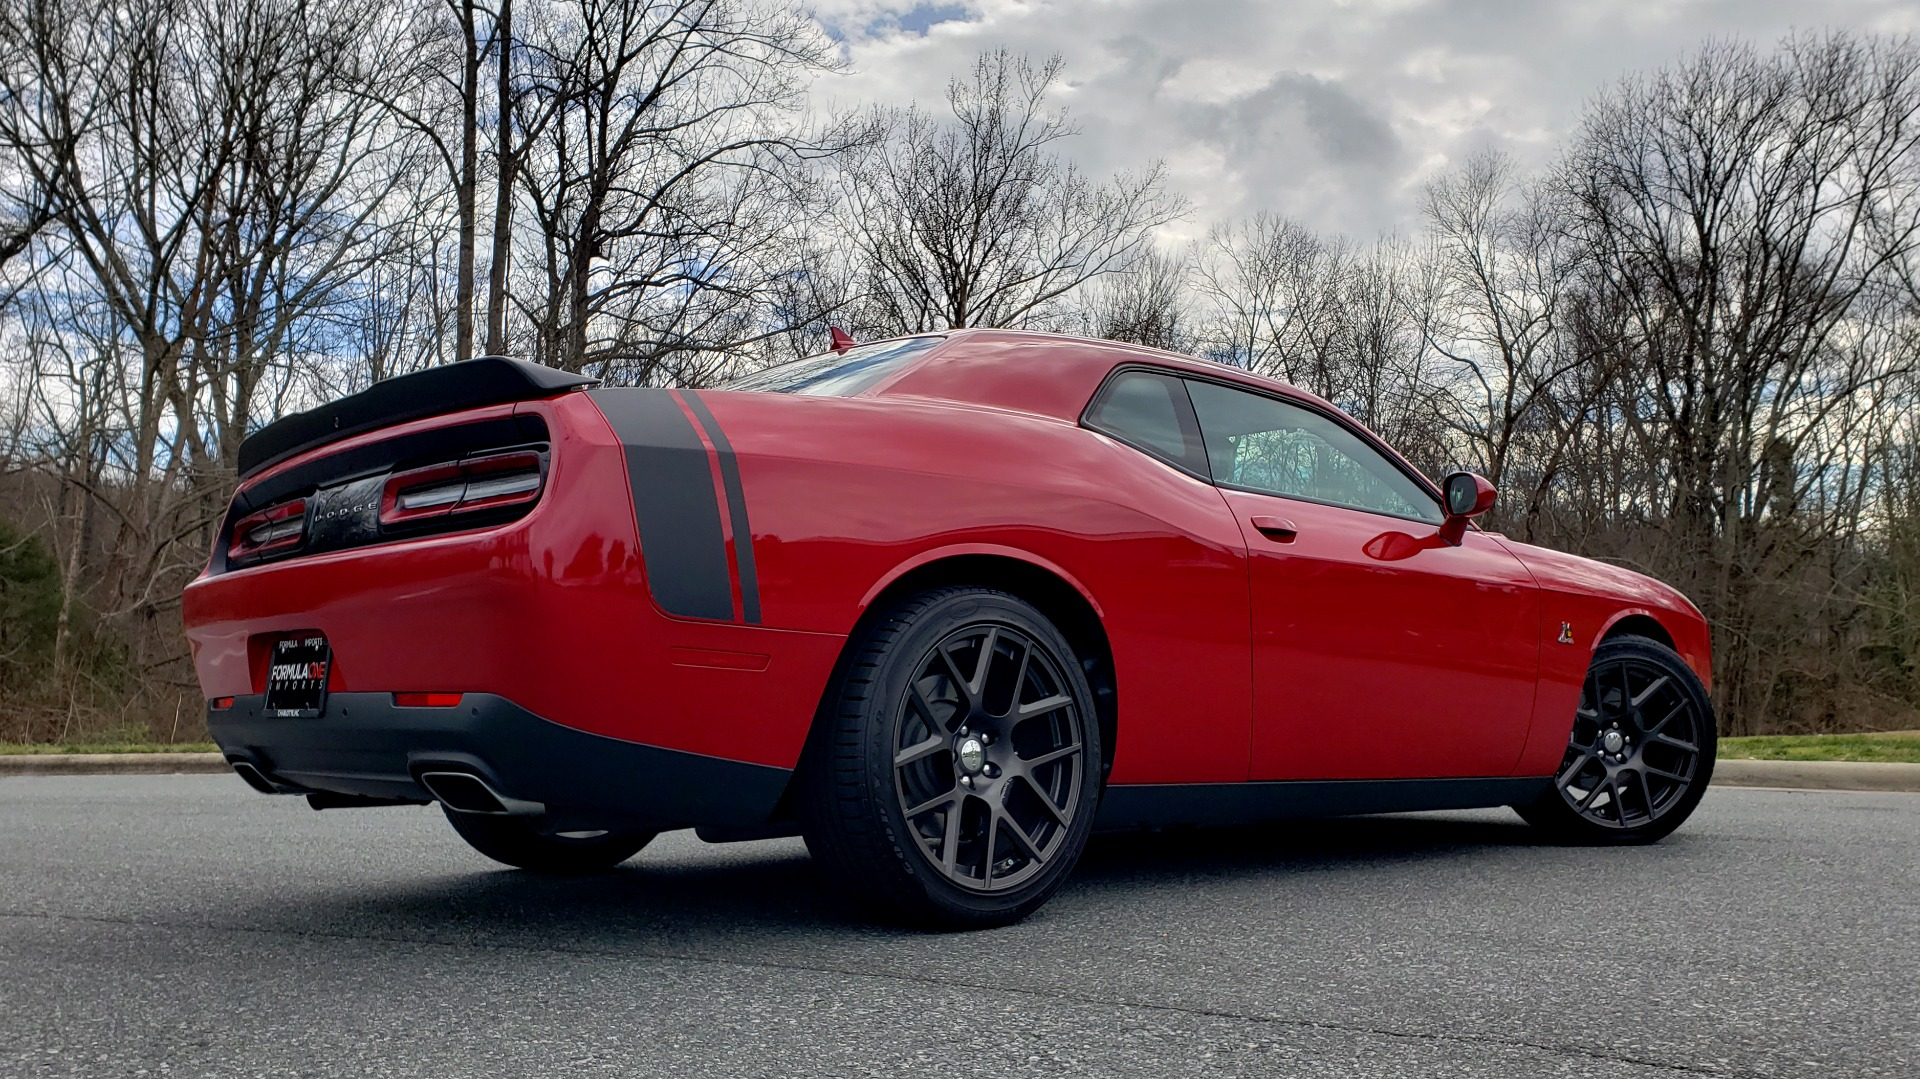 Used 2016 Dodge CHALLENGER R/T SCAT PACK / TECHNOLOGY / ALPINE / 6-SPEED MAN for sale Sold at Formula Imports in Charlotte NC 28227 11